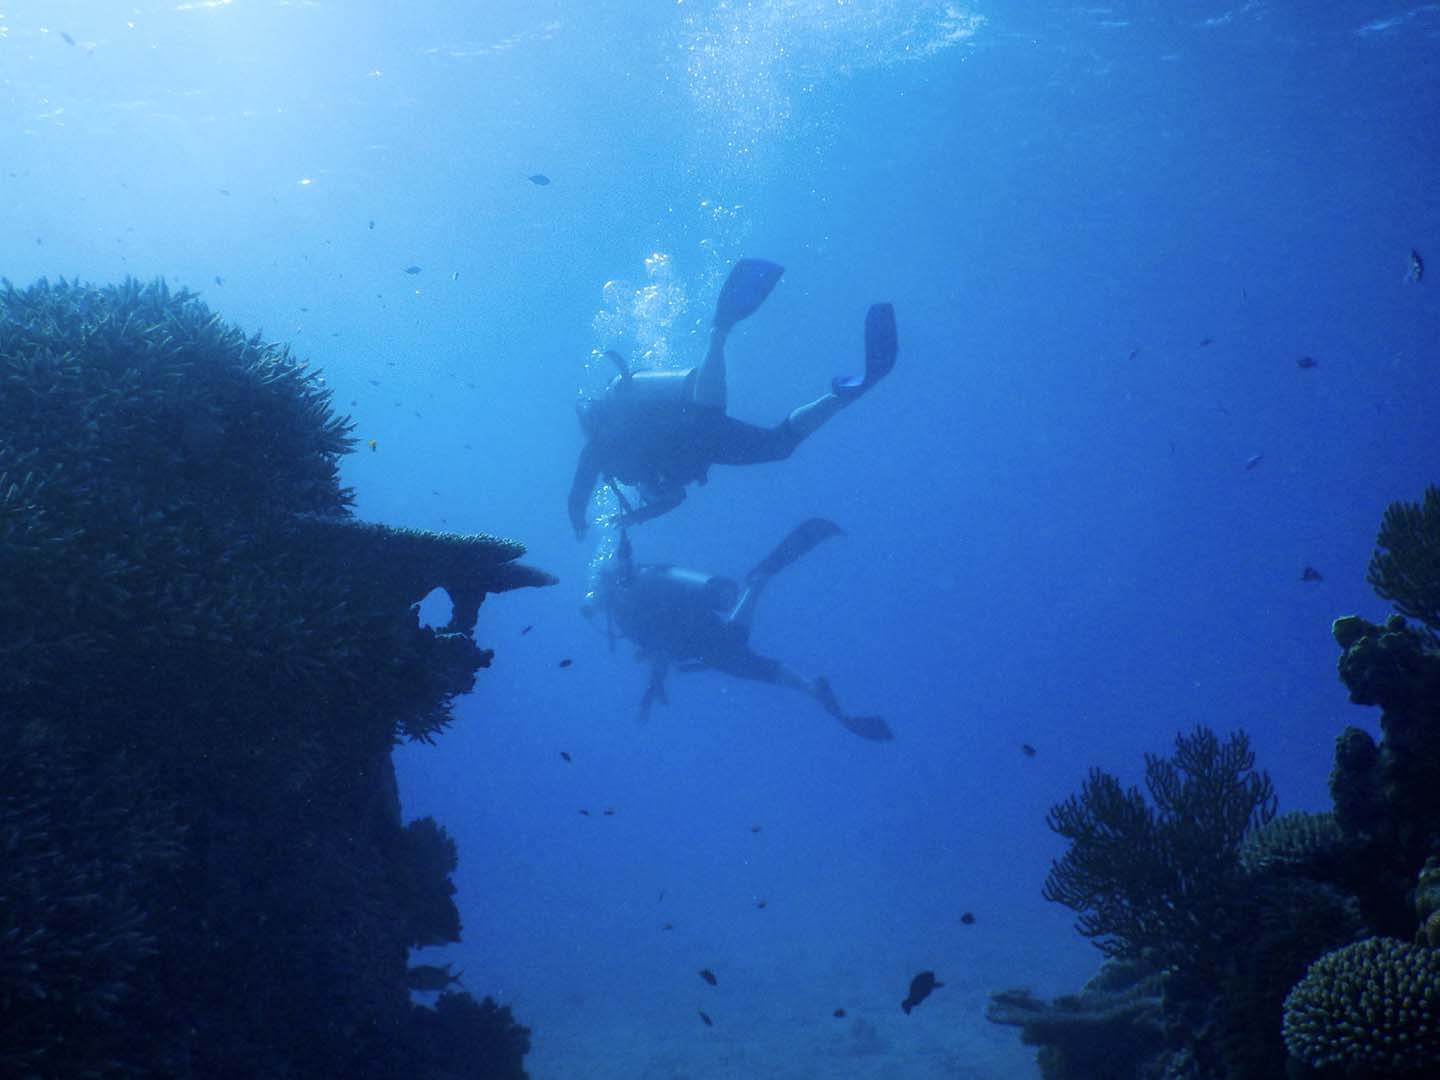 Self-guide scuba diving in the Great Barrier Reef